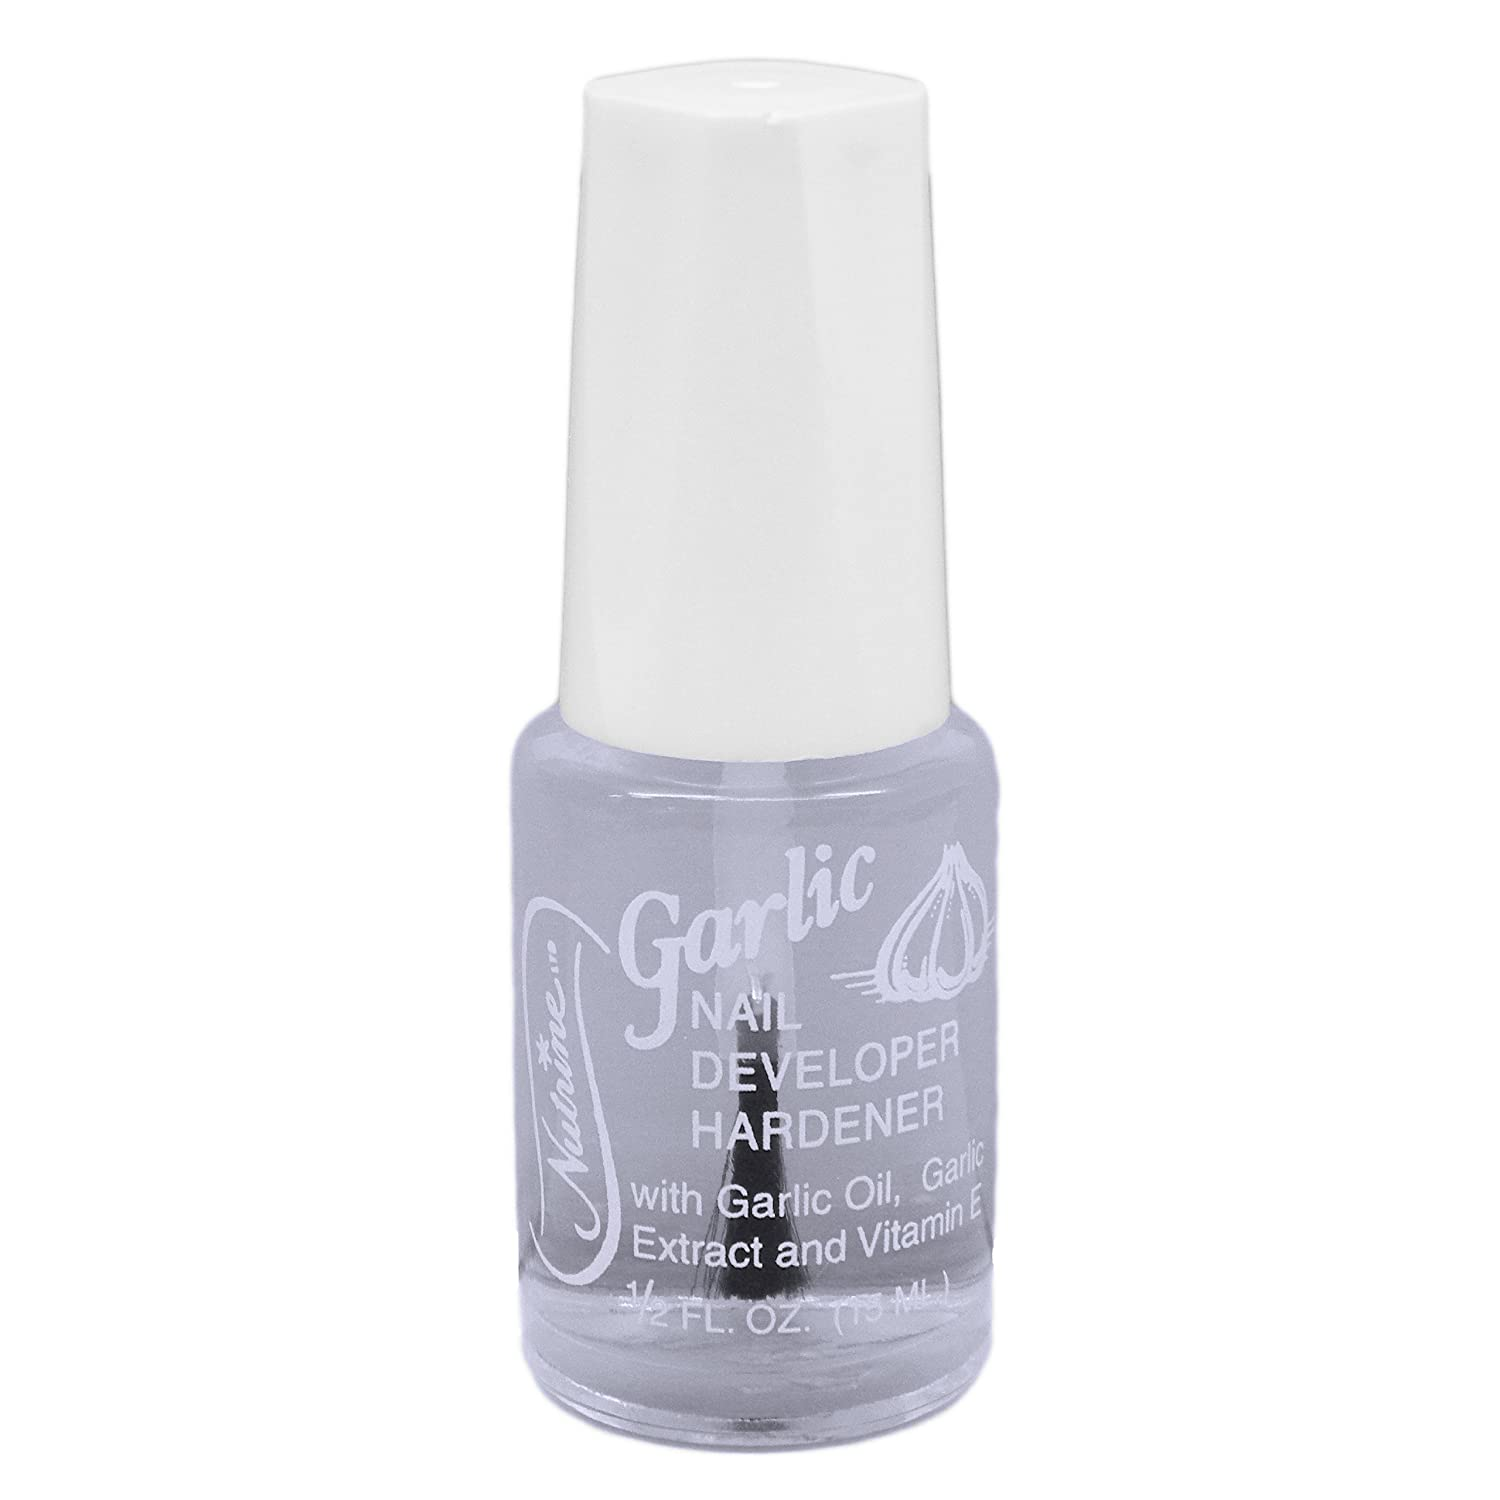 Amazon.com : Nutrine Garlic Nail Developer Hardener 1/2oz : Nail ...